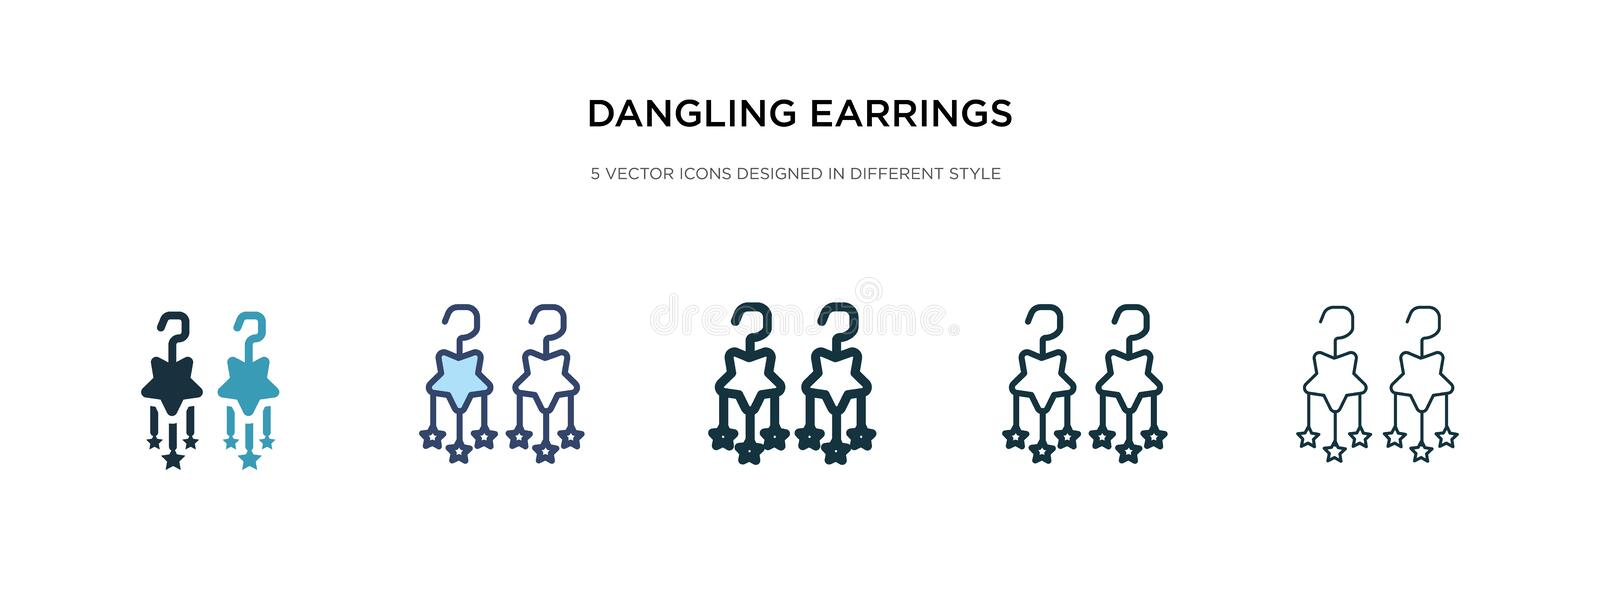 Dangling earrings icon in different style vector illustration. two colored and black dangling earrings vector icons designed in. Filled, outline, line and vector illustration